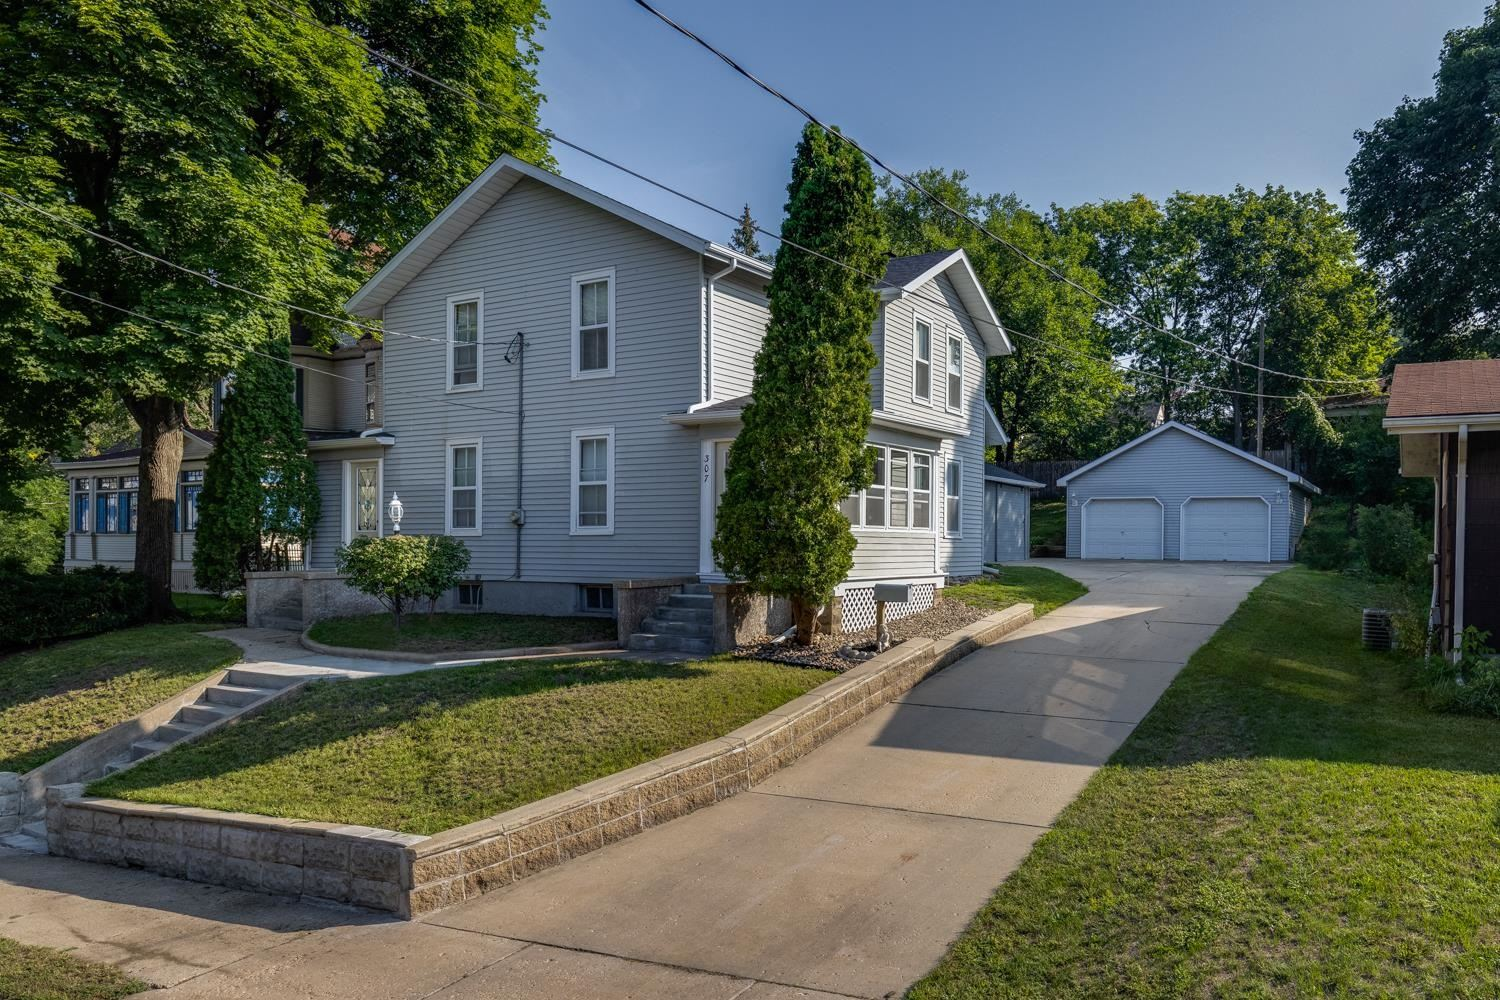 307 S Division St, Janesville, WI 53545 - #: 1918170